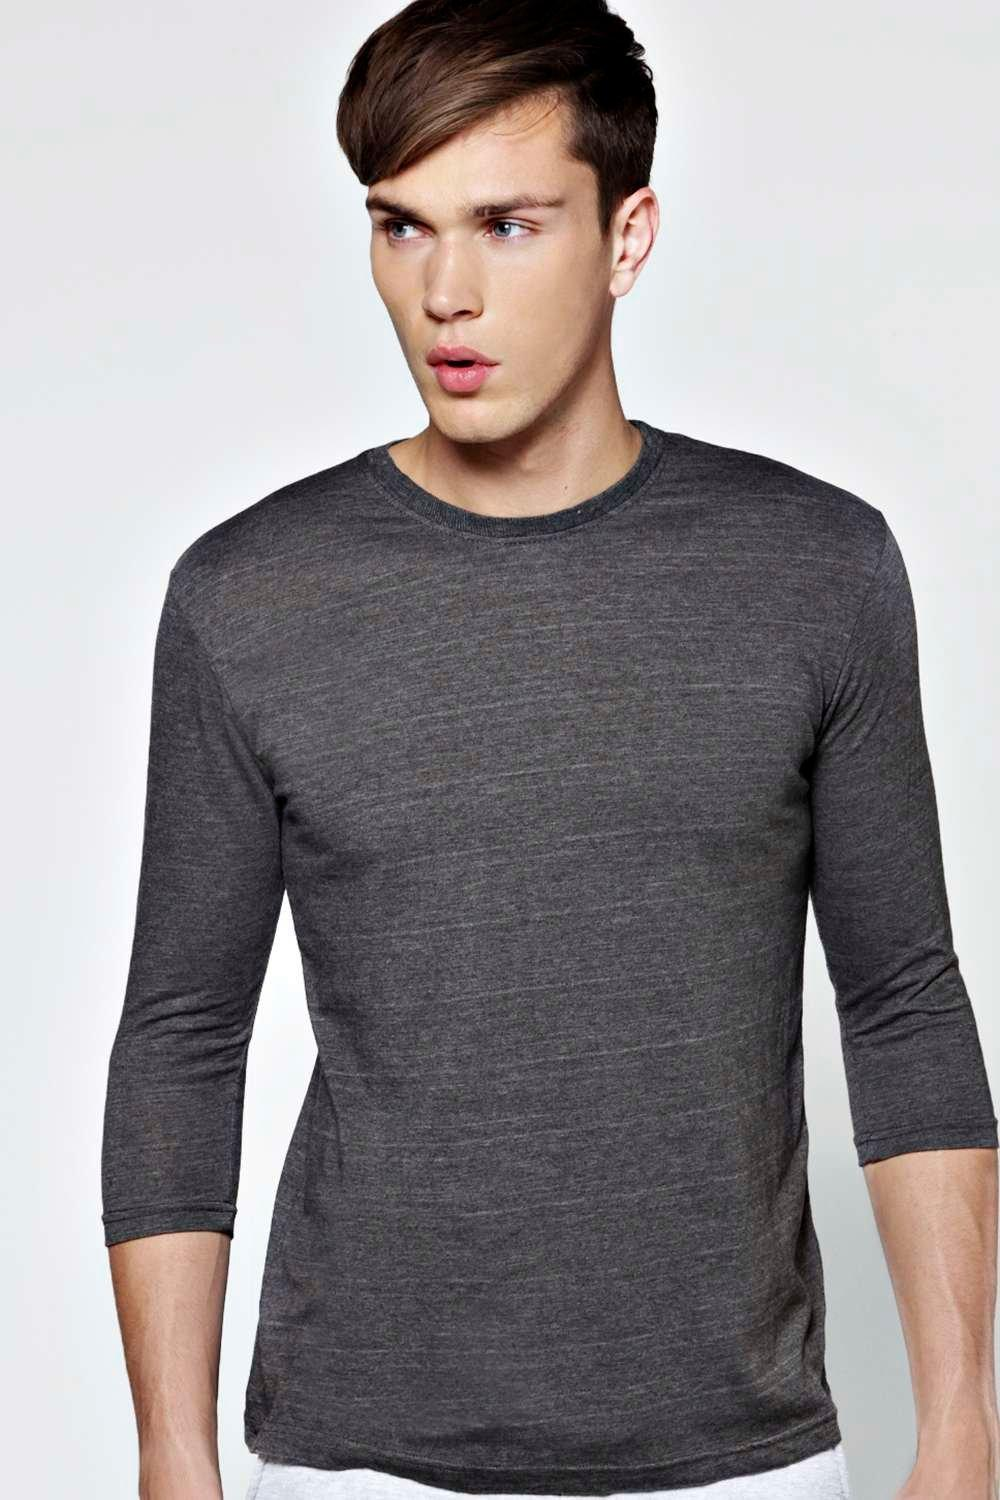 Image of 3/4 Sleeve Crew Neck T Shirt - charcoal